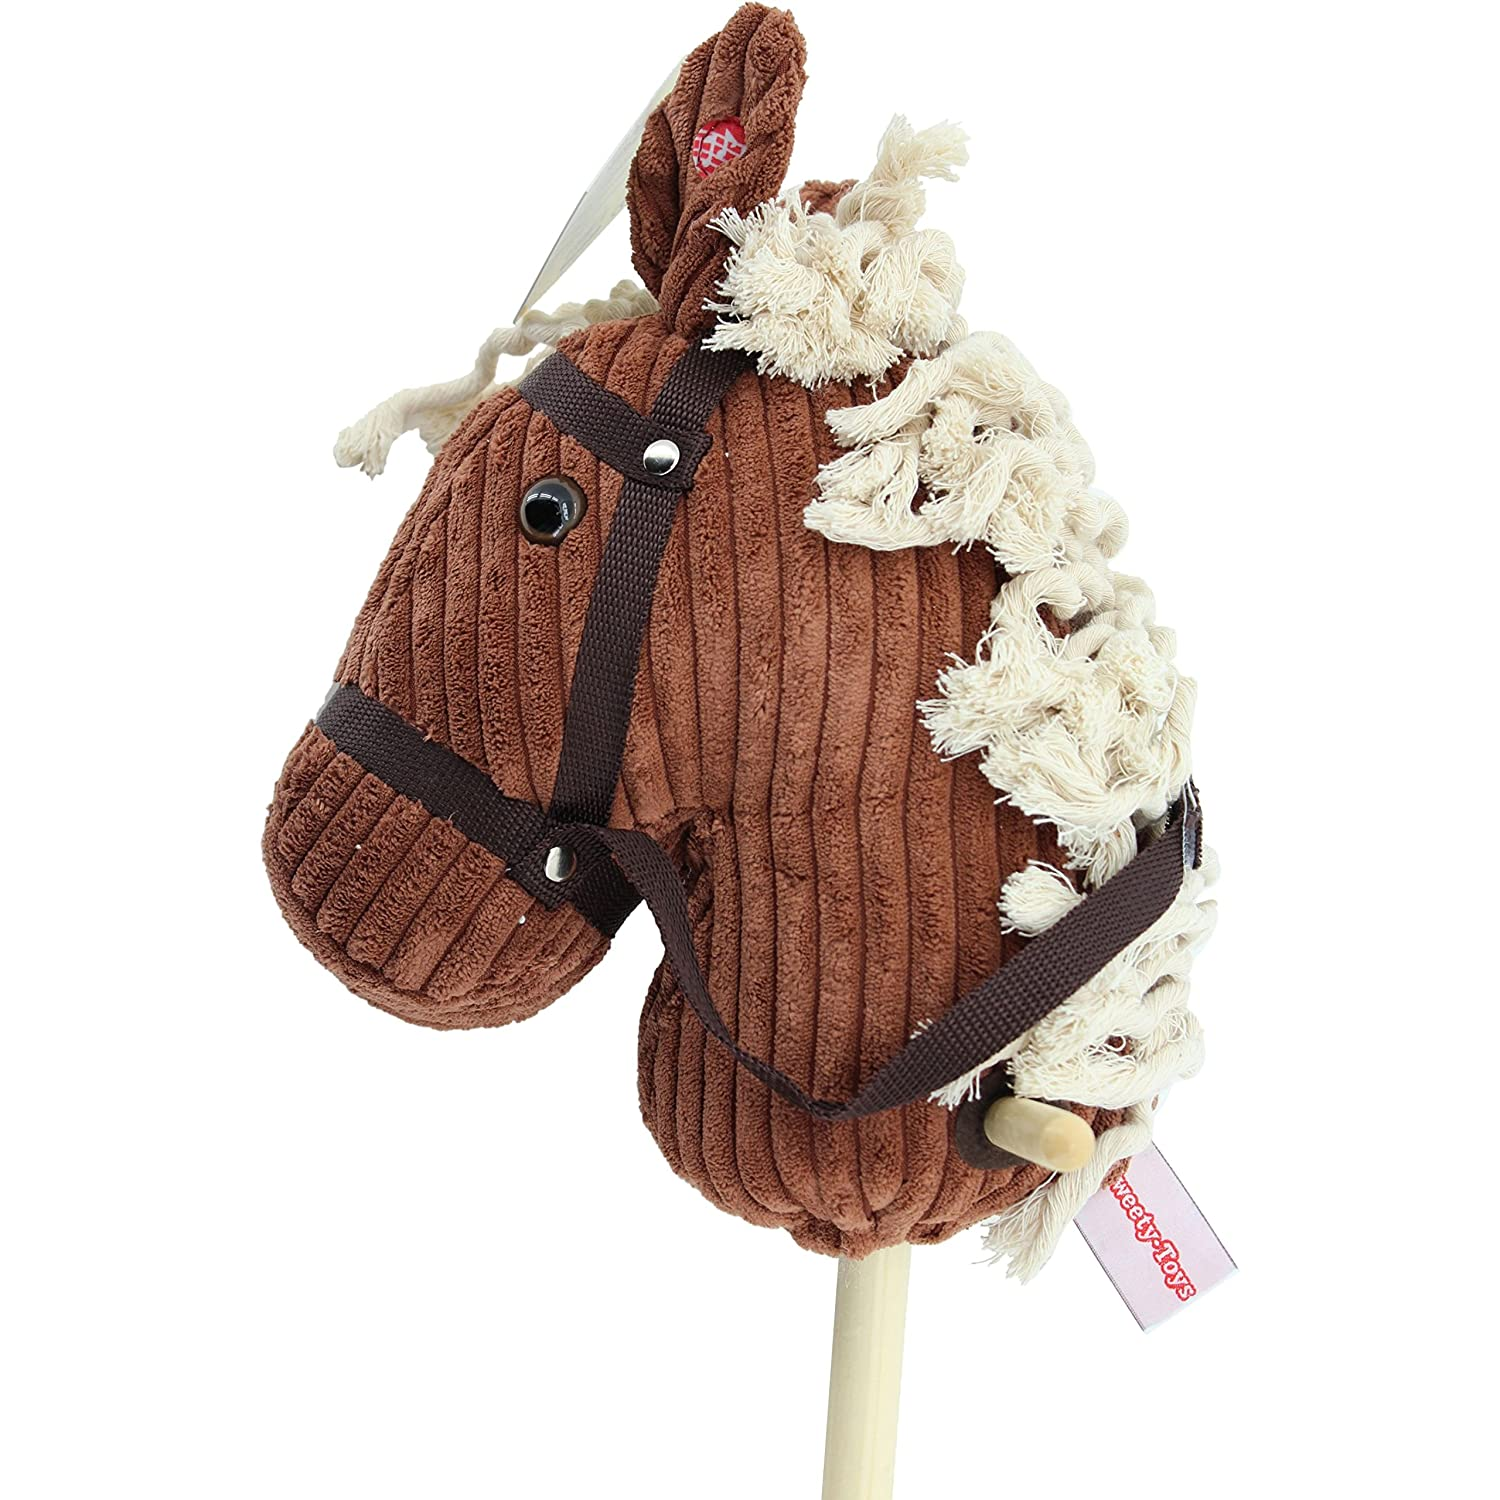 Sweety-Toys 6762 BROWN Sugar CORD COTTON Têtes de cheval à chevaucher Sweety Toys